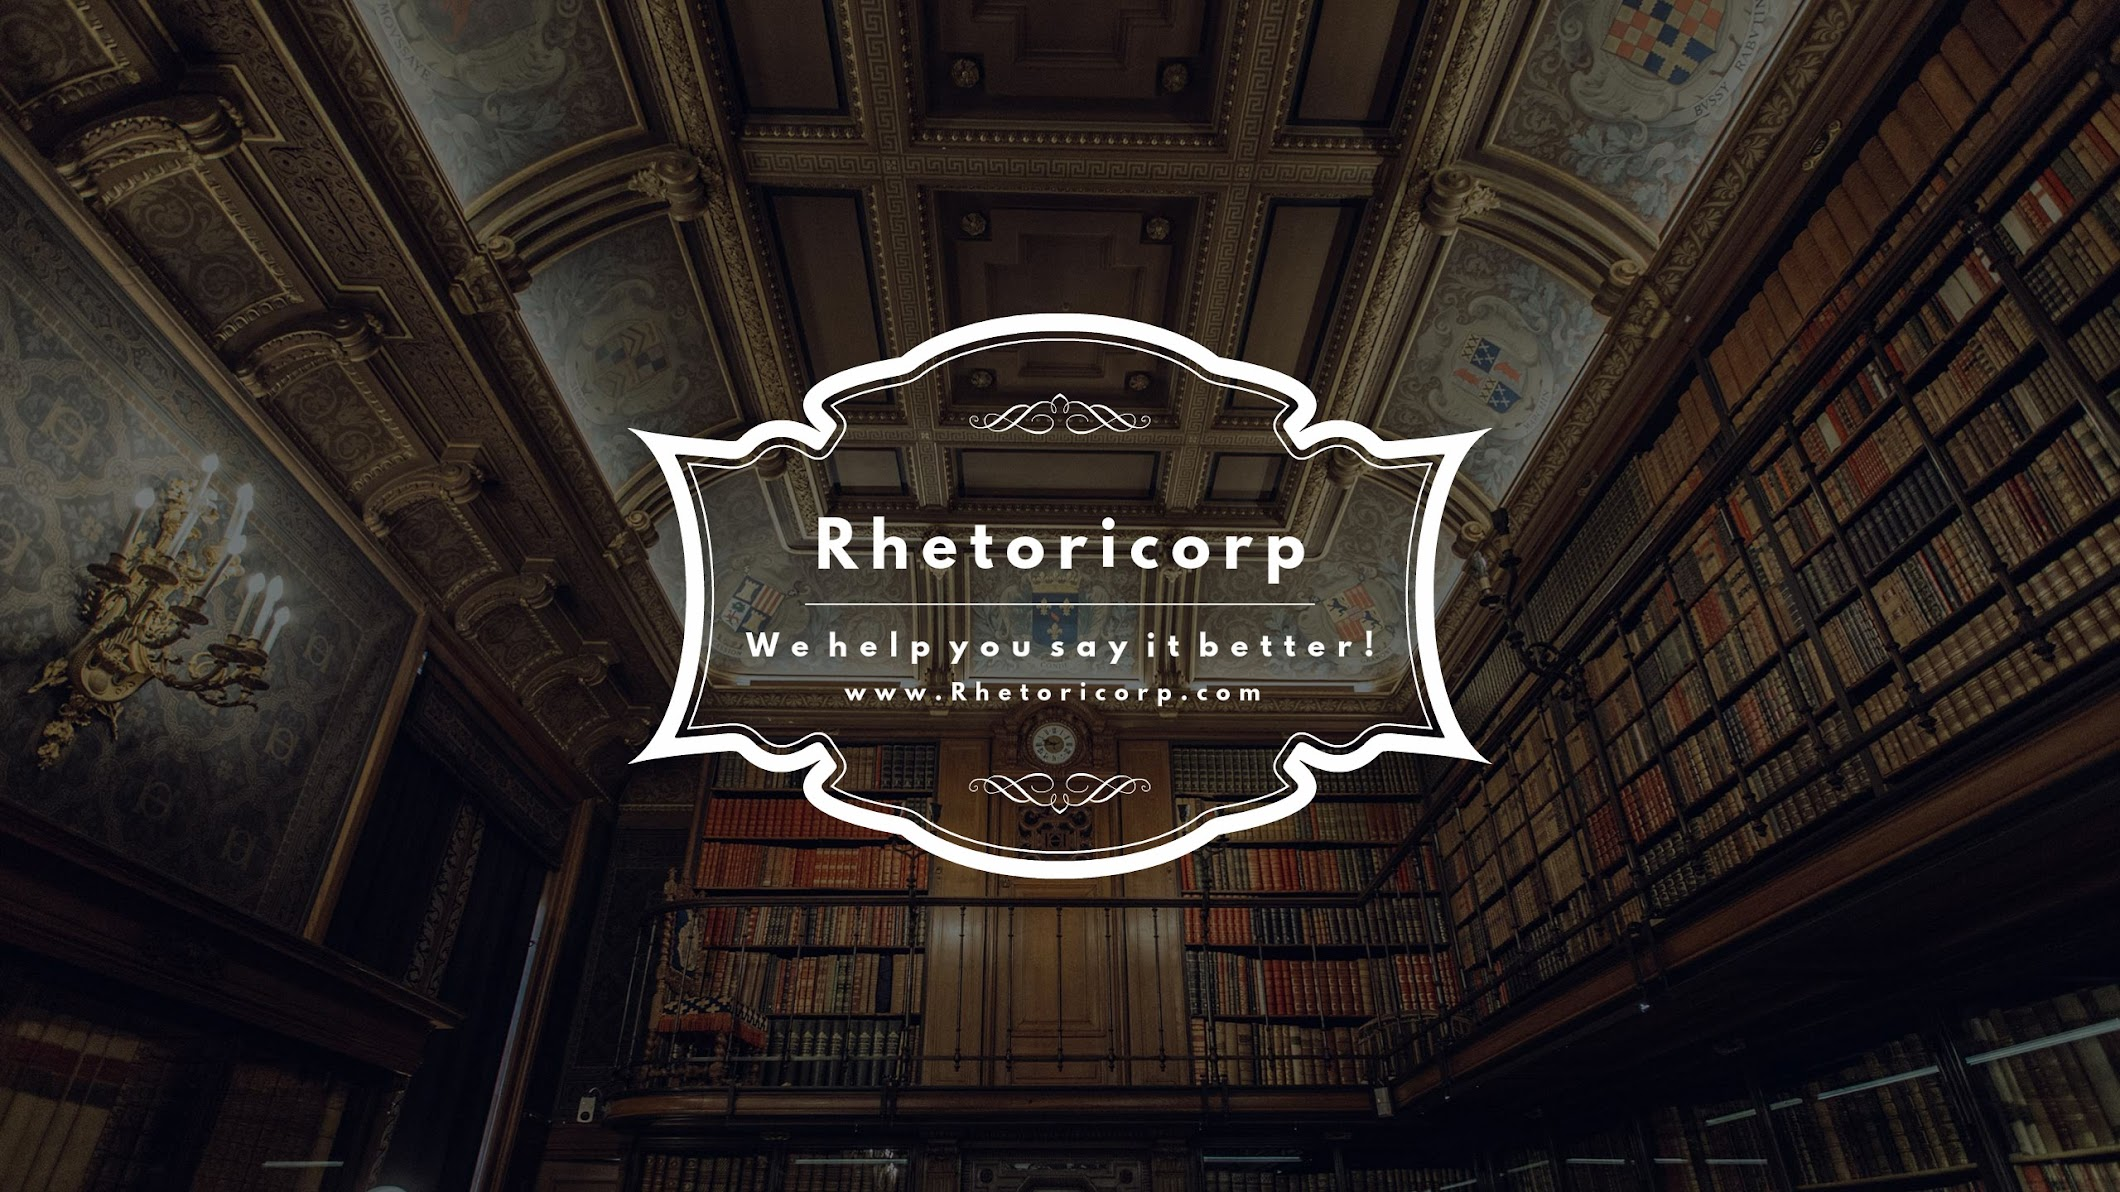 Rhetoricorp